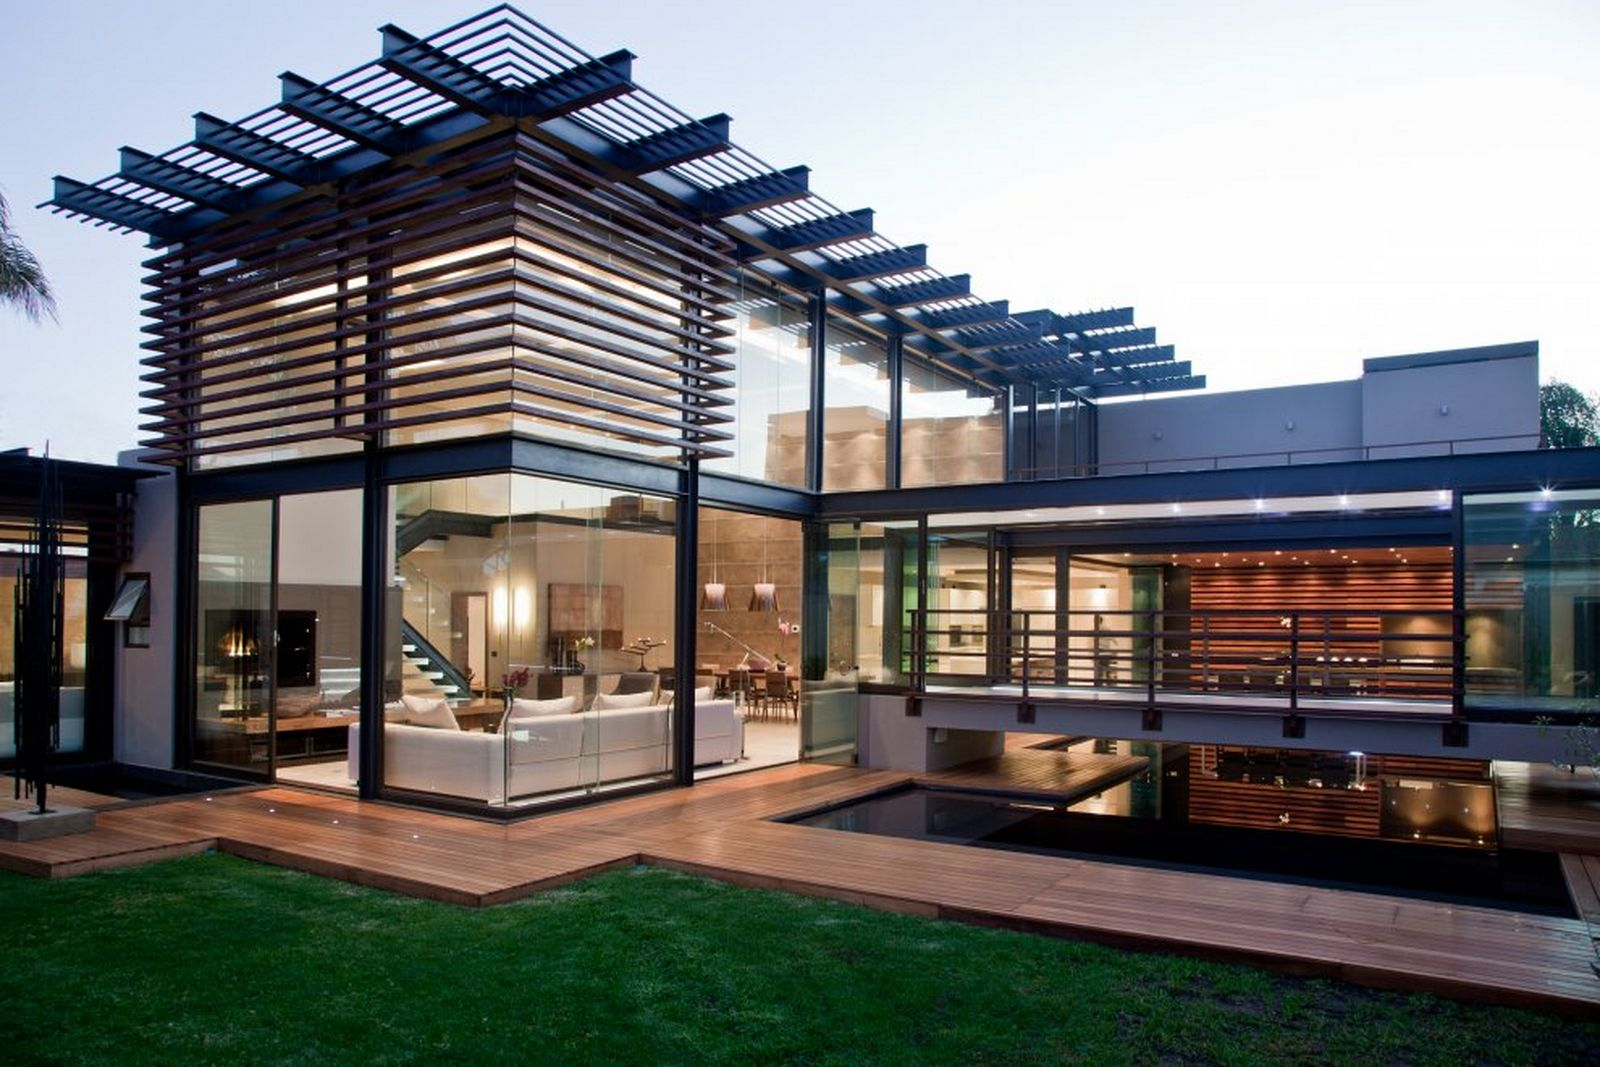 71 contemporary exterior design photos - Home Exterior Design Ideas